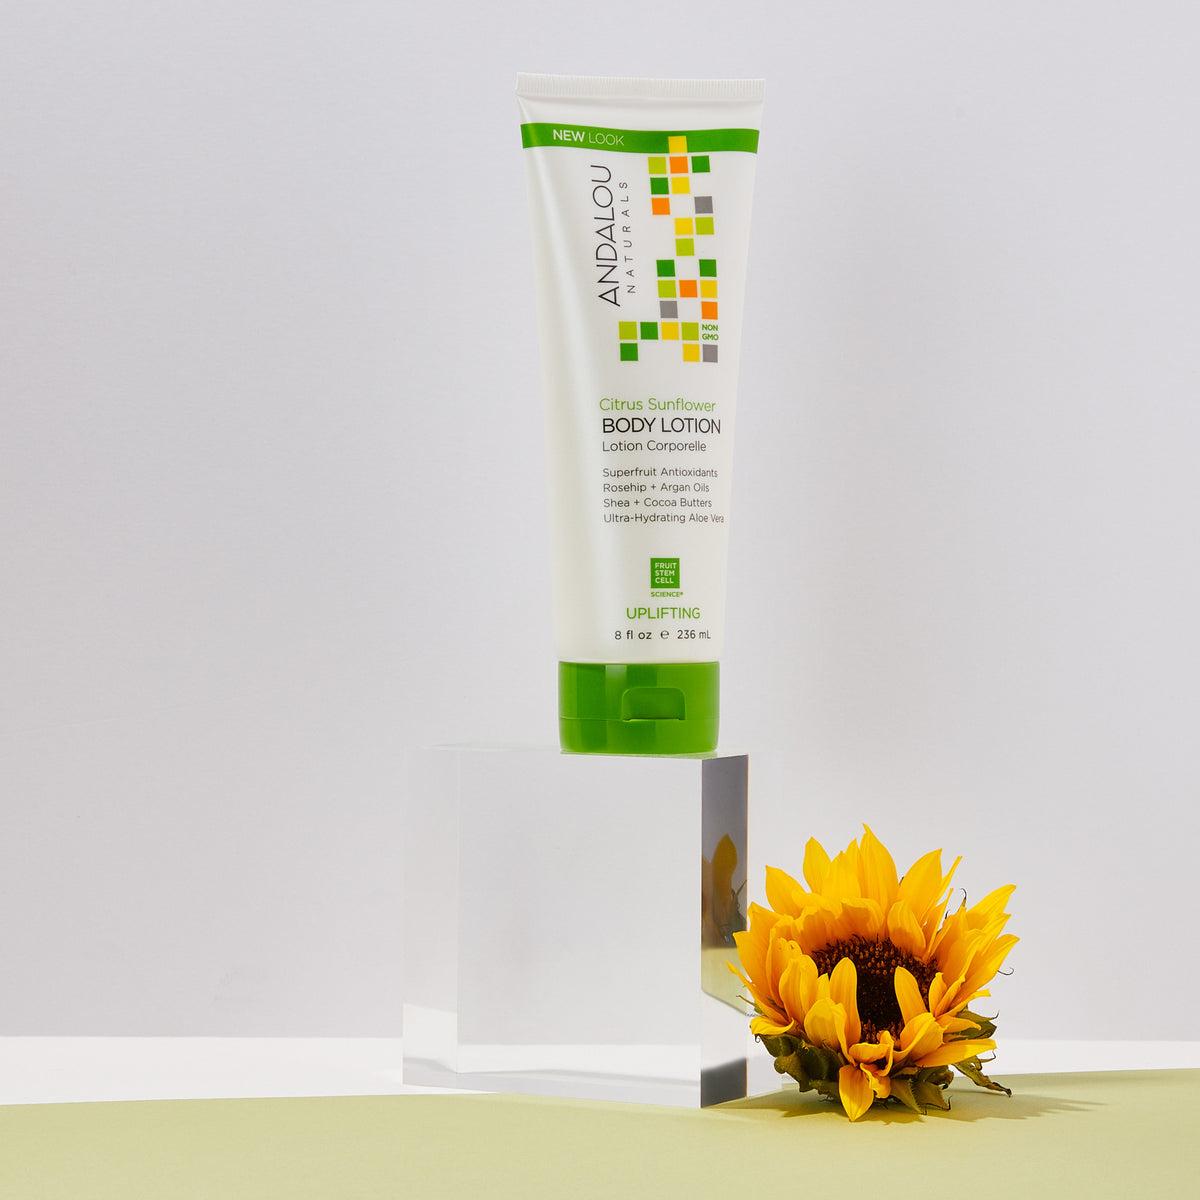 Andalou Naturals Citrus Sunflower Uplifting Body Lotion with a sunflower